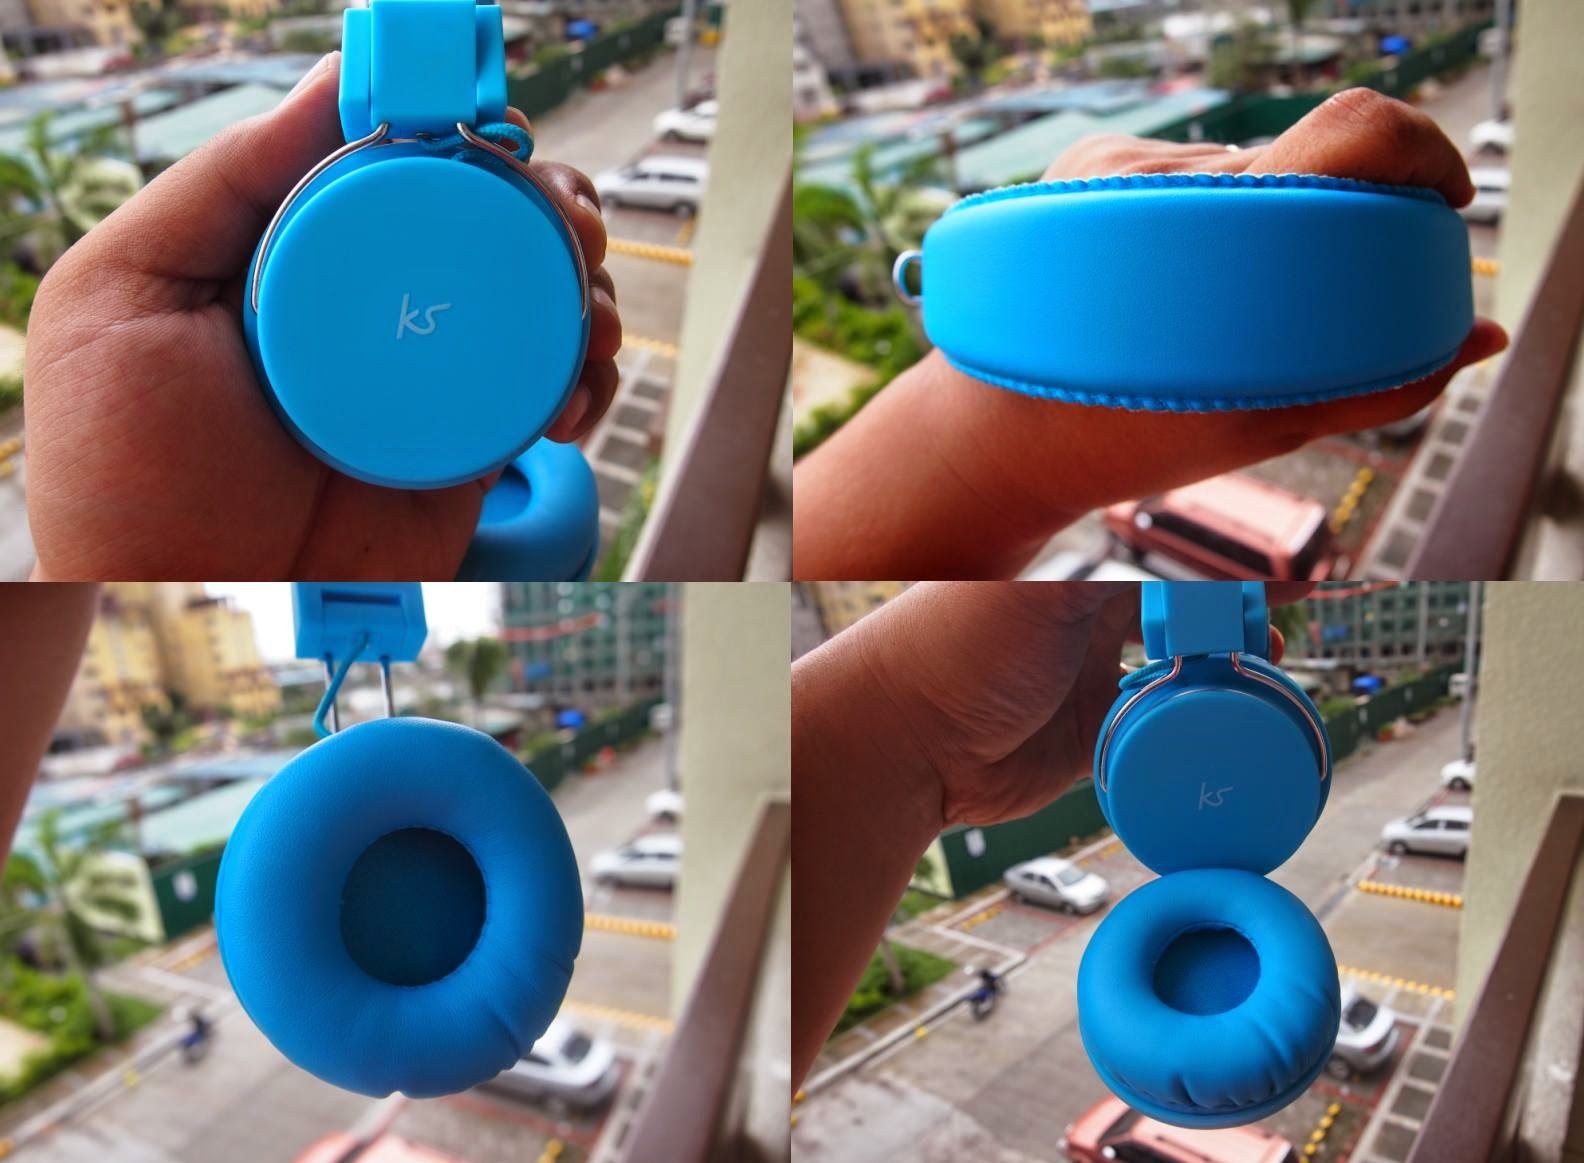 Kitsound Manhattan Wireless Headphone Review: From UK to NY